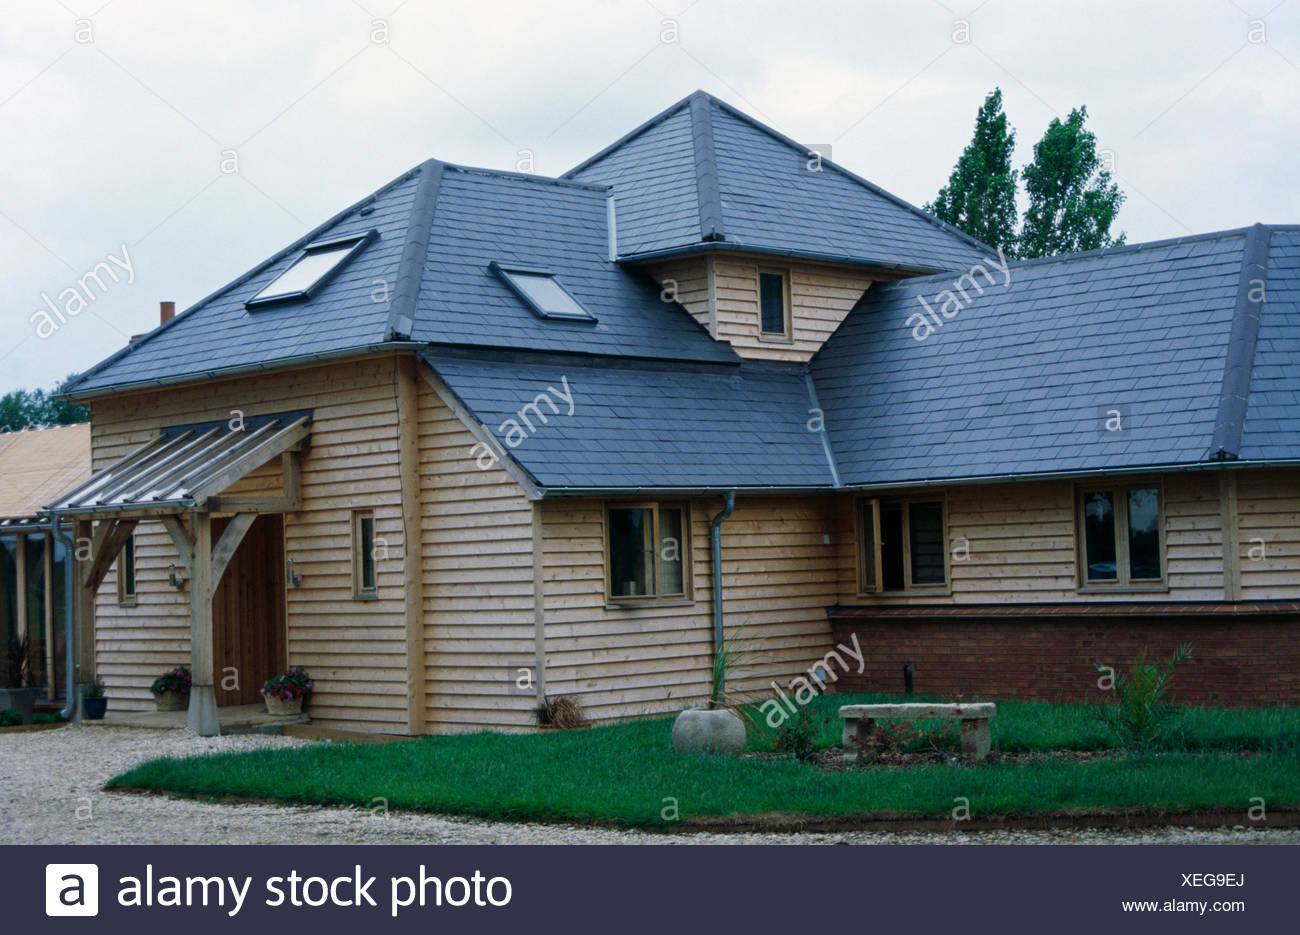 Slate Roof Modern House High Resolution Stock Photography And Images Alamy